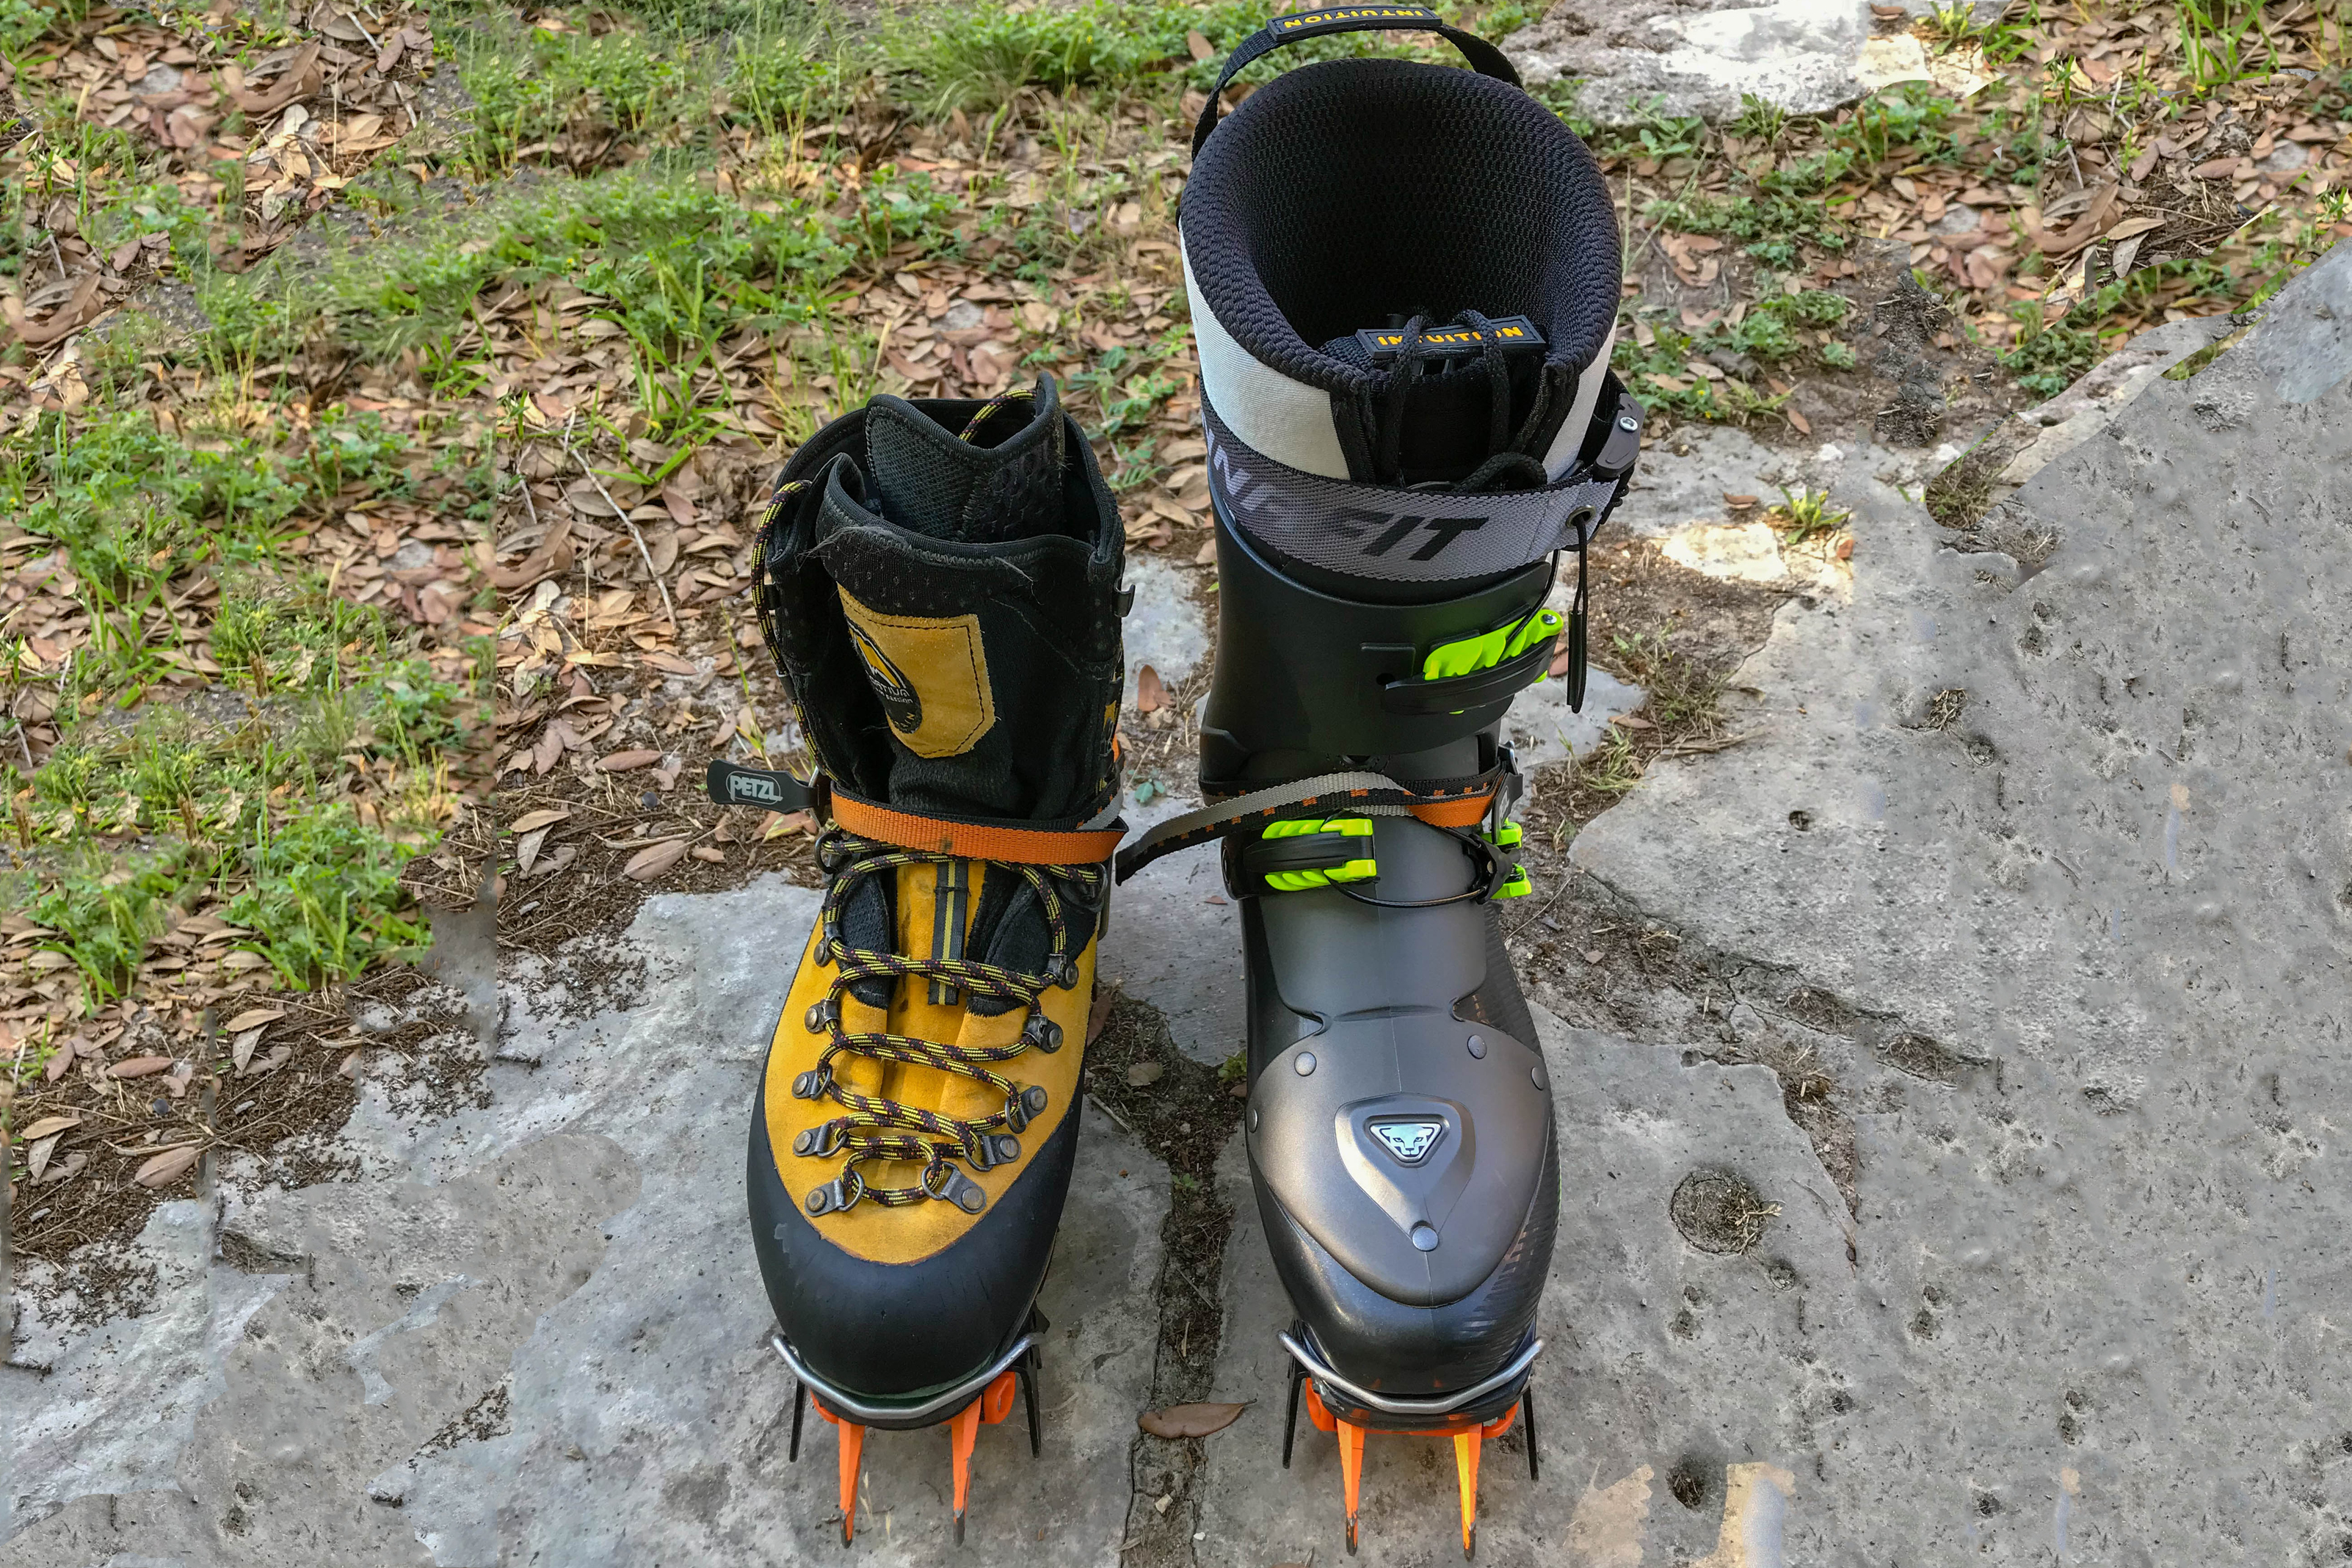 Dynafit TLT Speedfit Ski Touring and La Sportiva